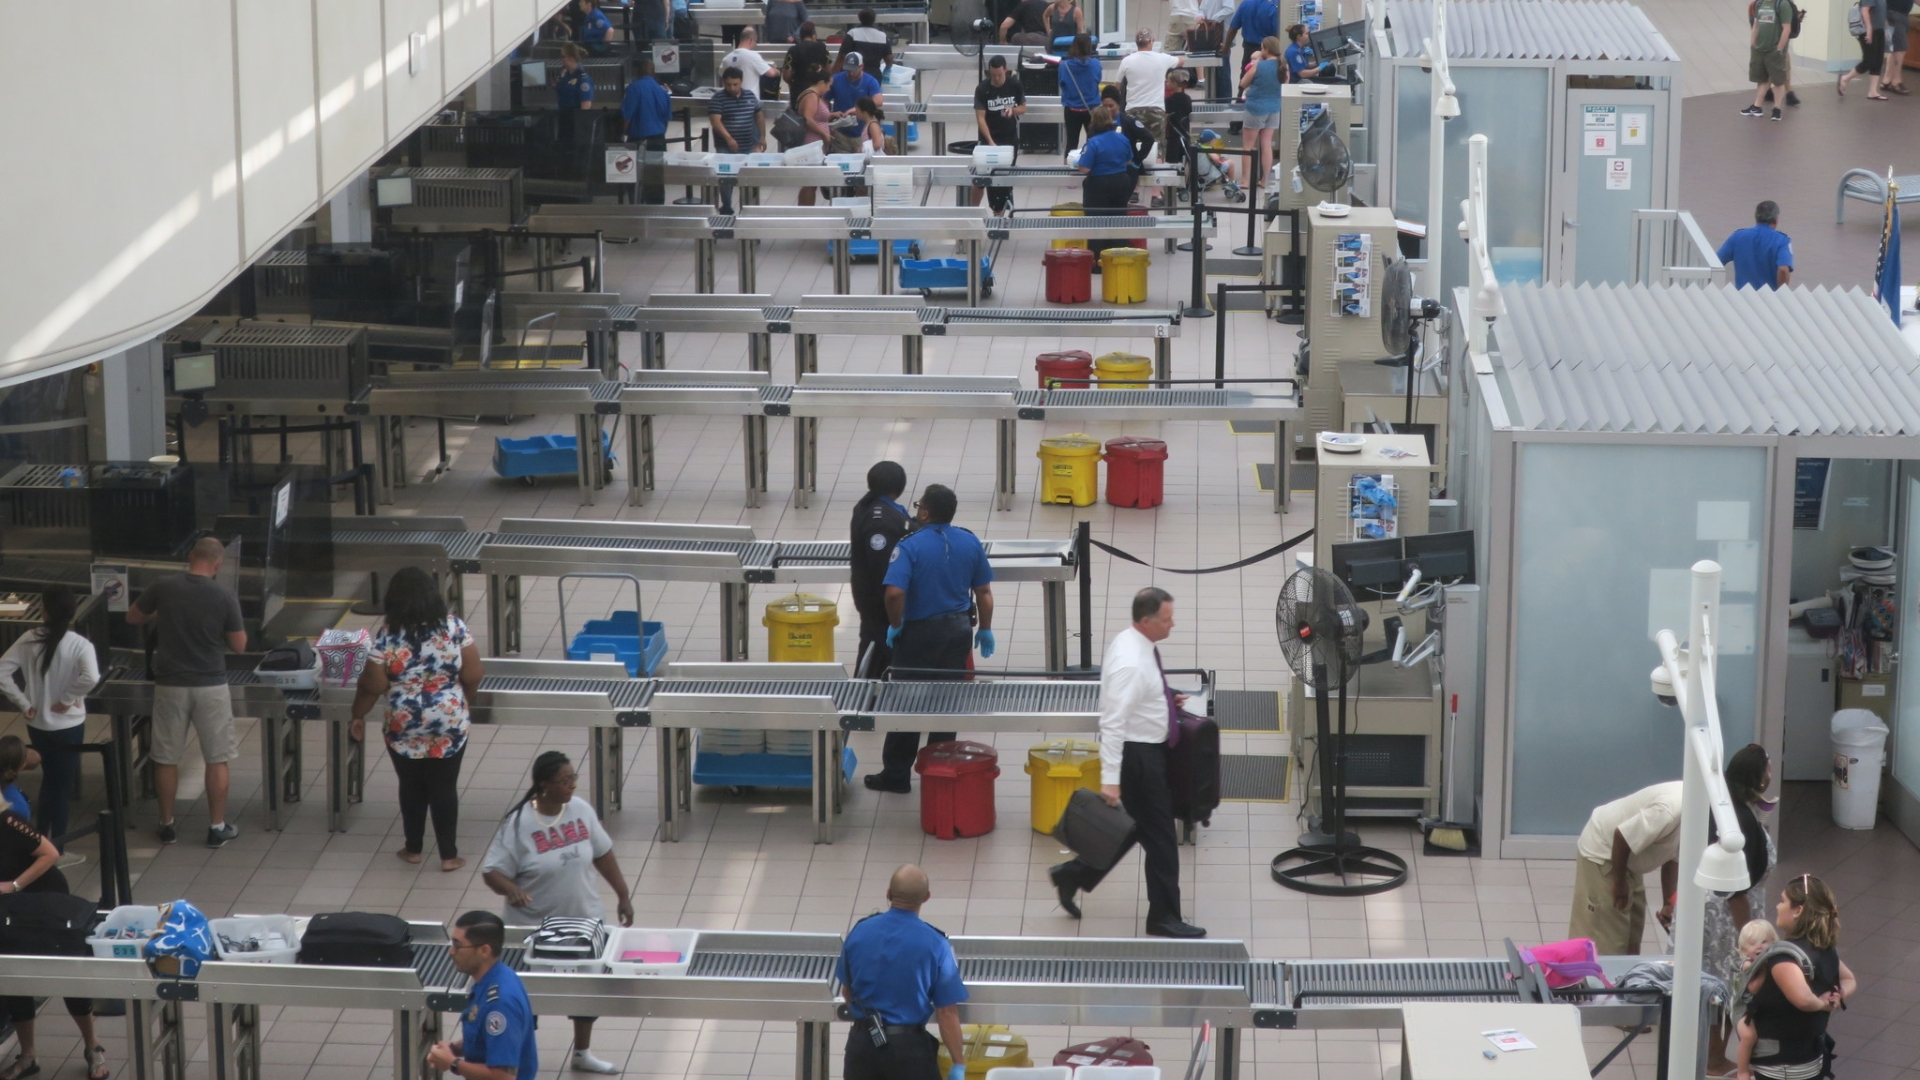 Orlando airport cash seizure: Feds seek to keep $129K they